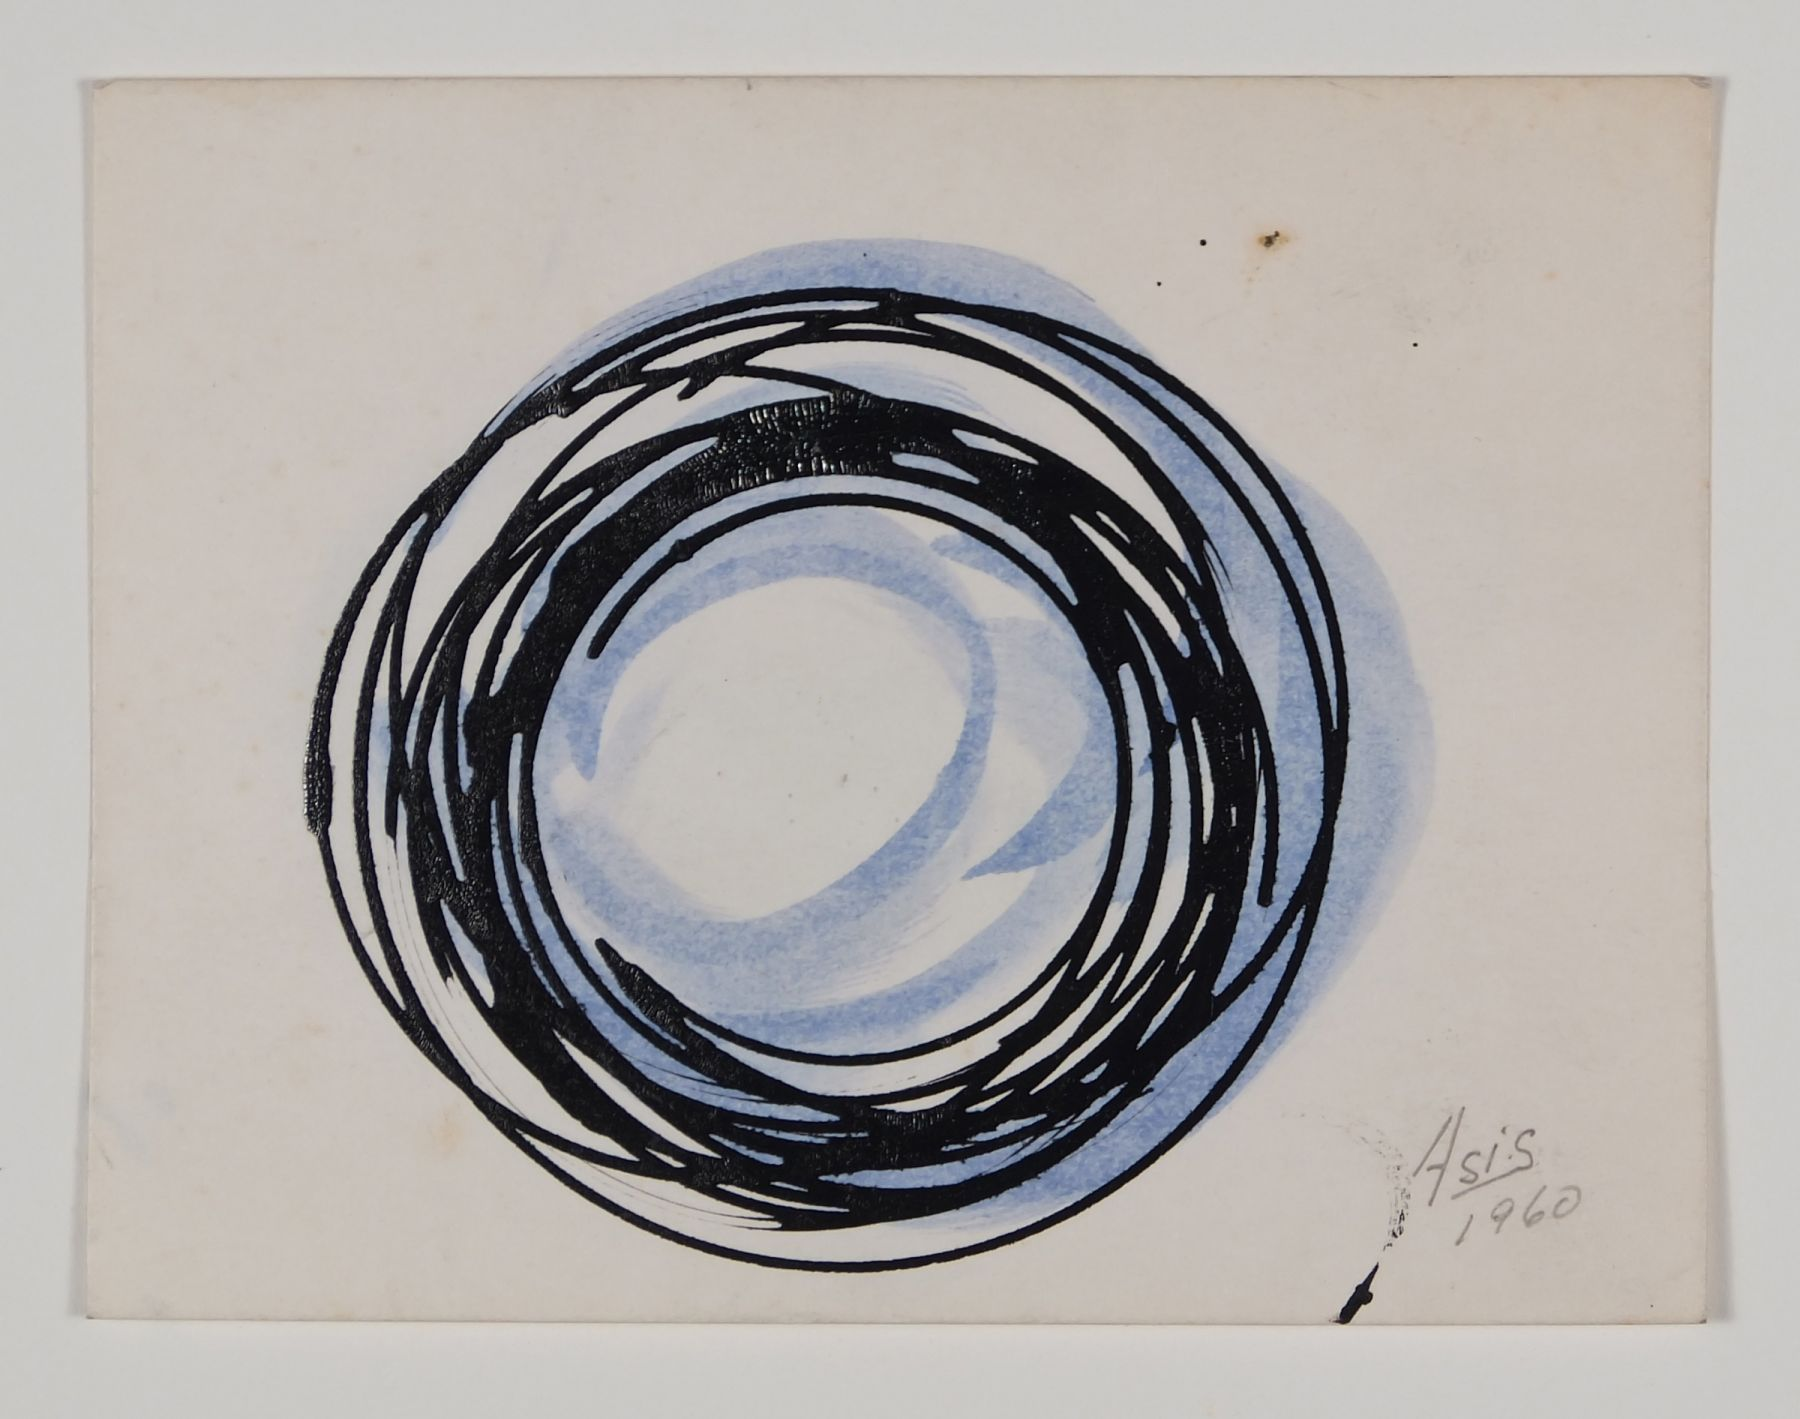 Antonio Asis, Untitled, 1960,Gouache and ink on paper,3 1/2 x 4 9/16 in. (8.9 x 11.7 cm.)